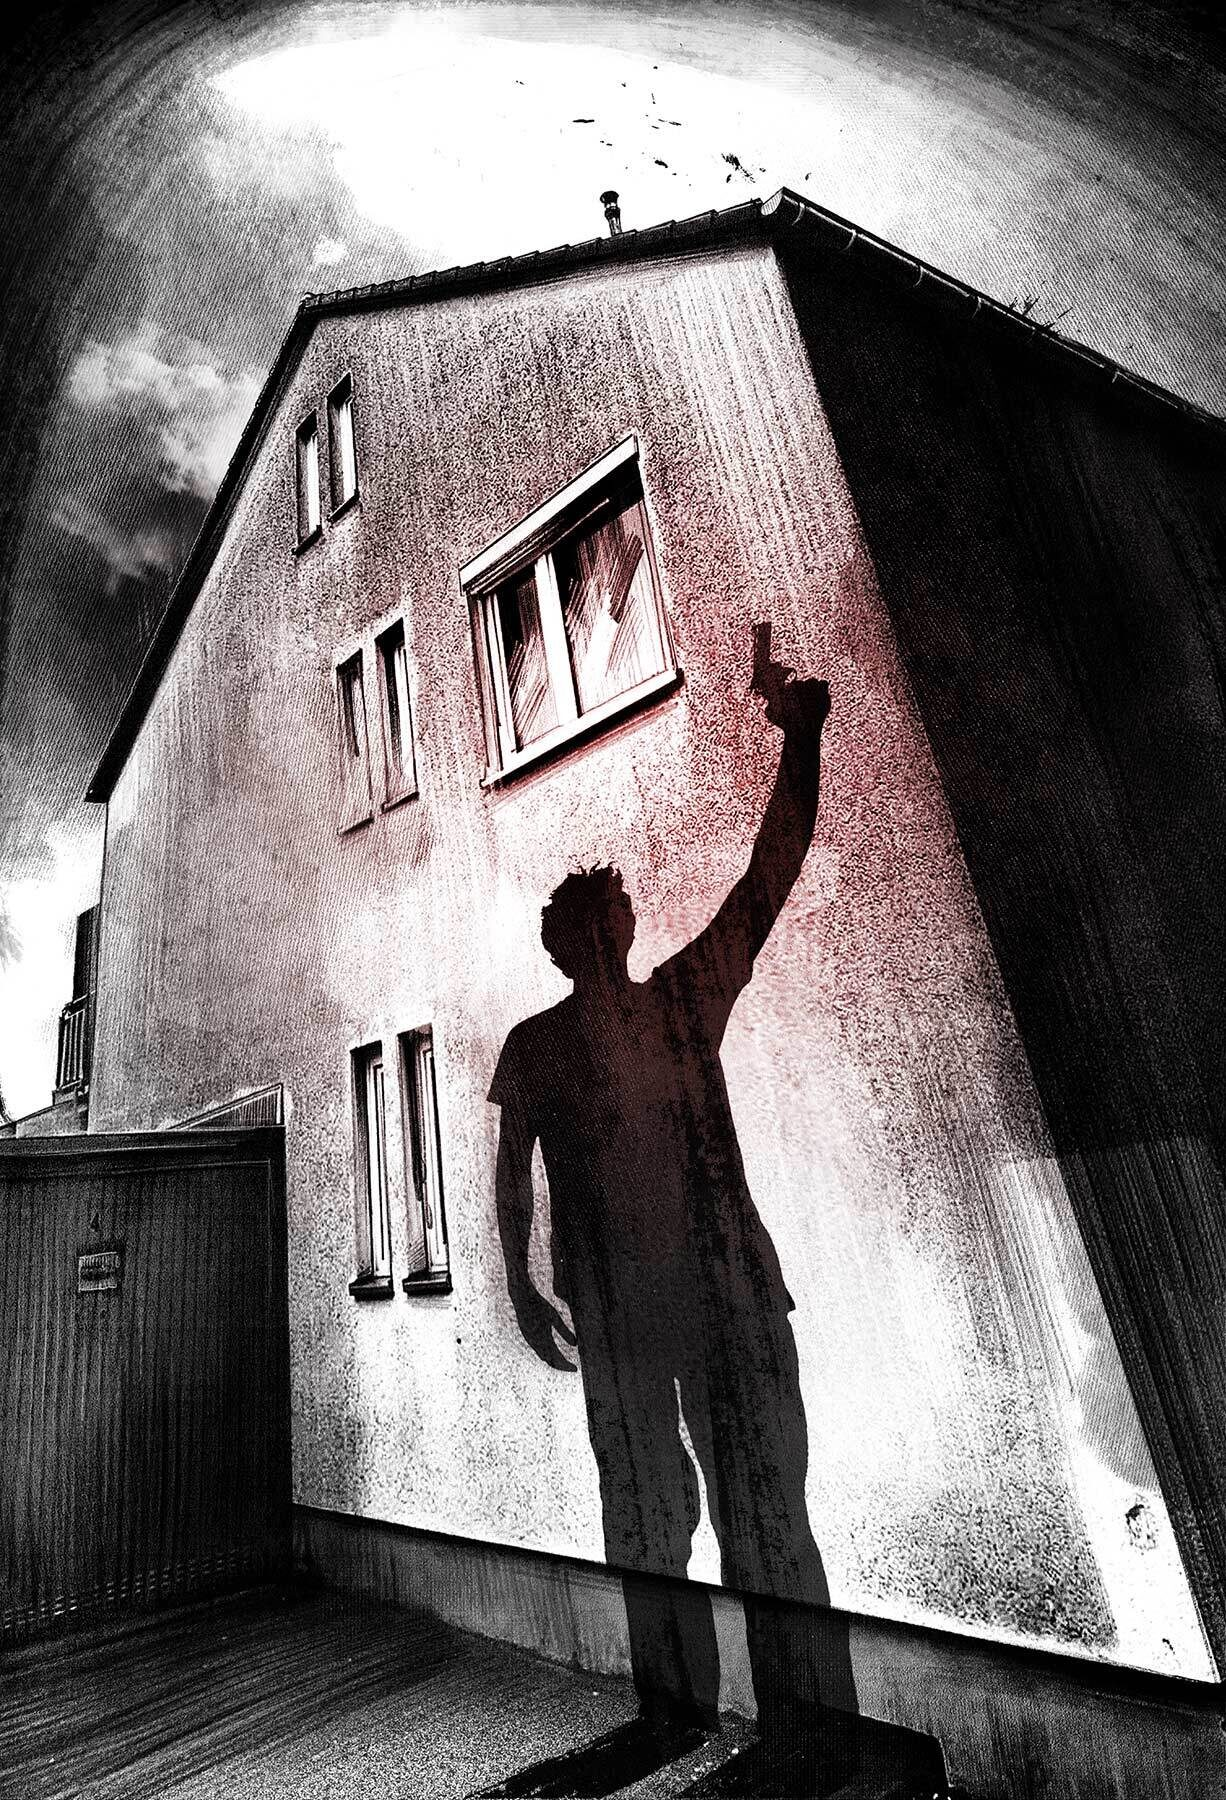 Crime scene shadow illustration - Kornel Illustration | Kornel Stadler portfolio